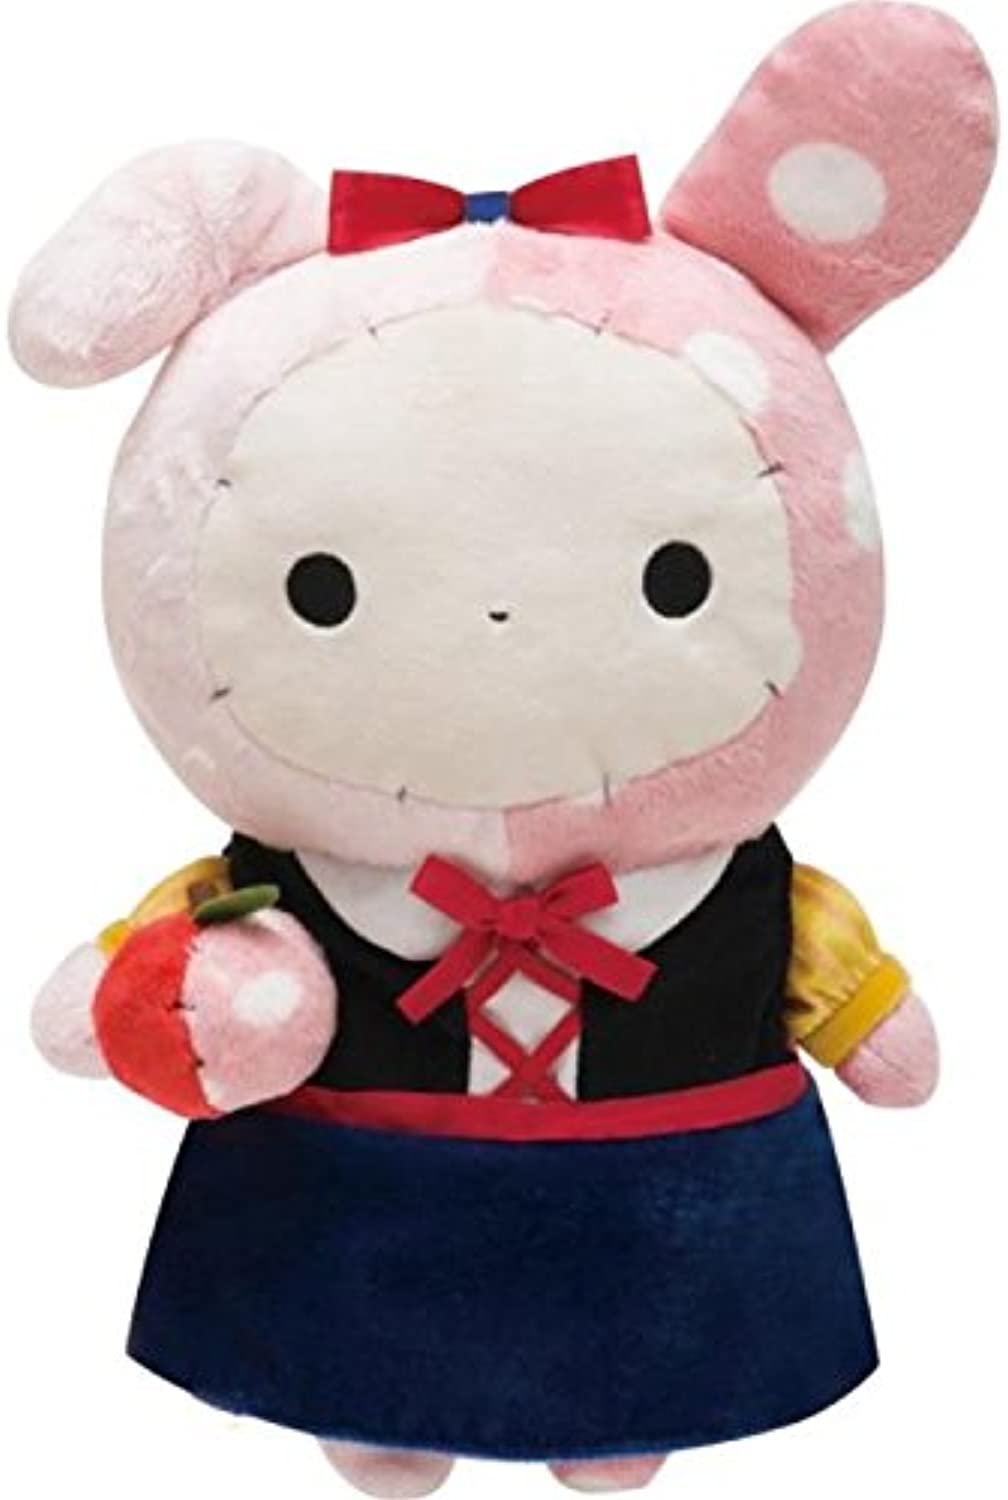 SanX Sentimental Circus Stuffed toy (Snow White of the Tearing Apple) [MR91101] (Japan Import)